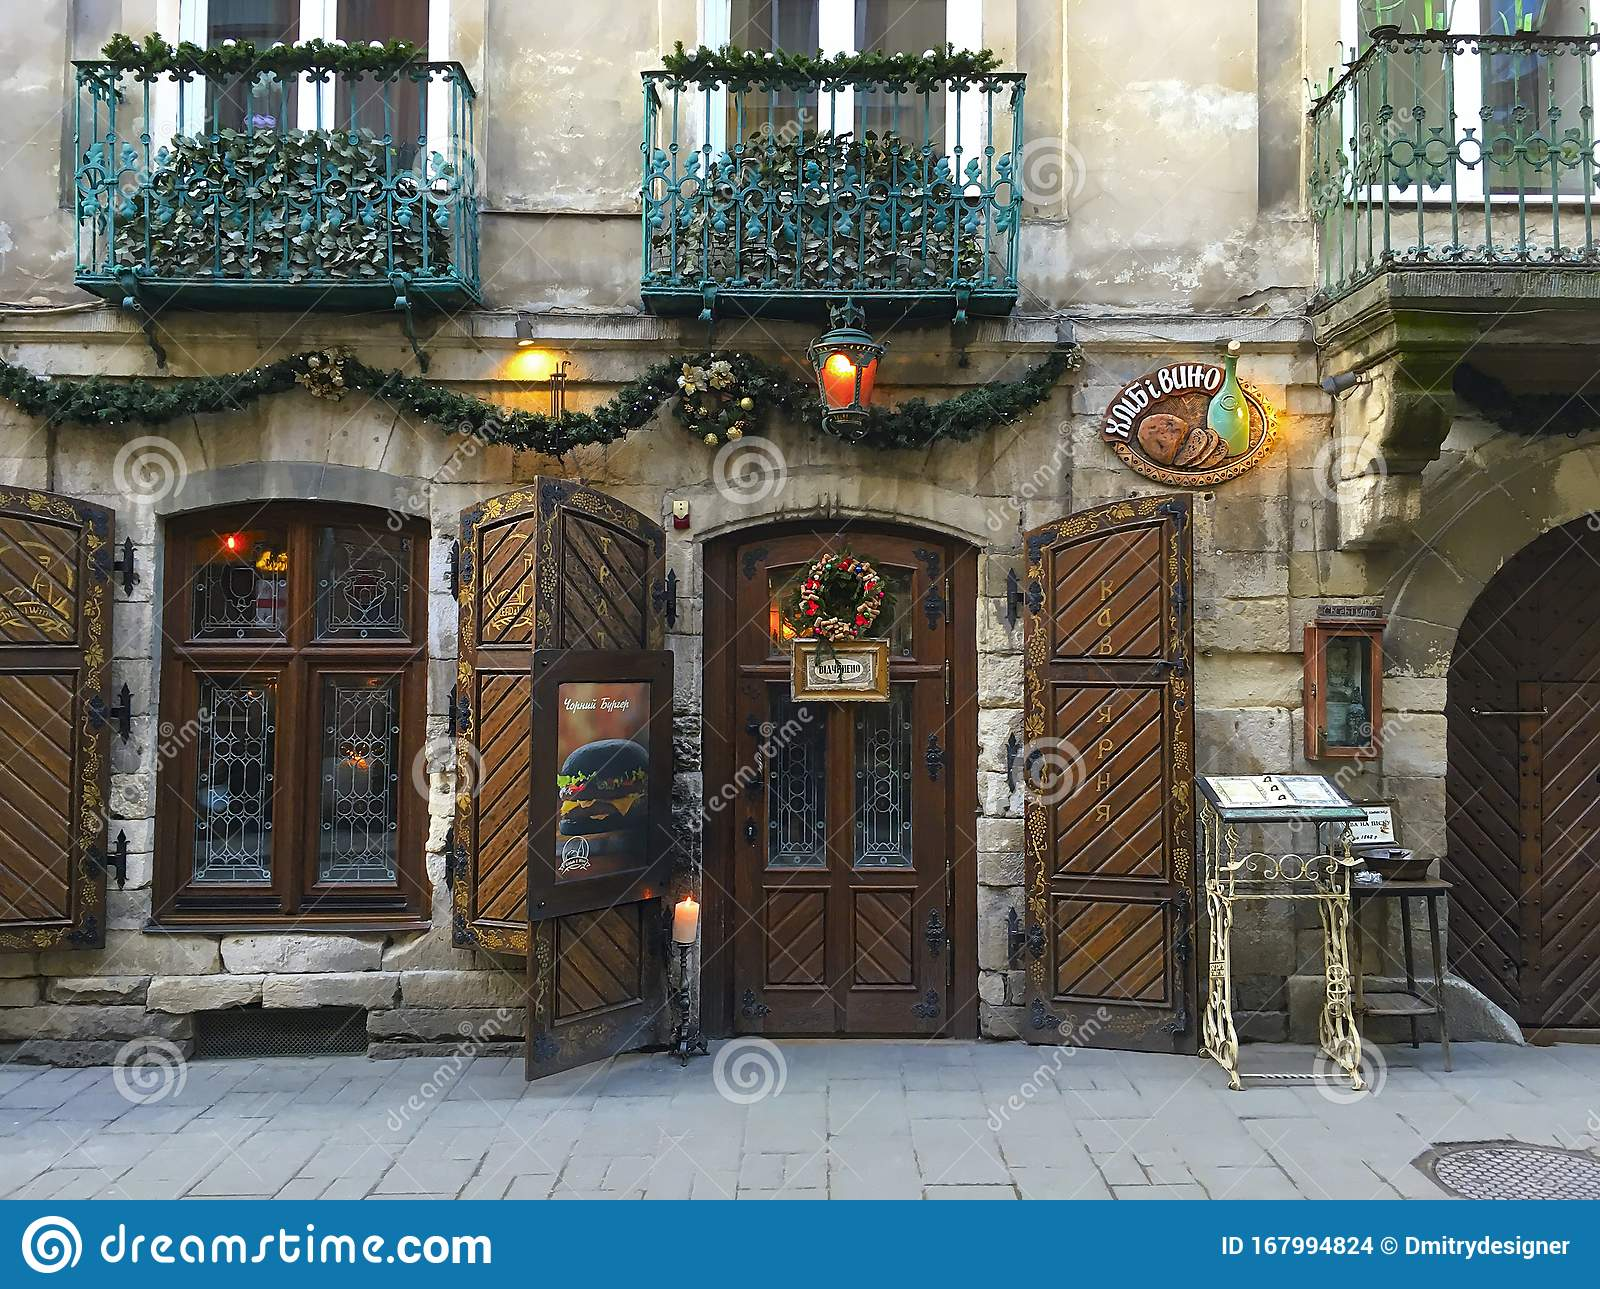 Beautiful Restaurant Exterior With Antique Massive Wooden Doors And Windows With A Christmas Wreath On The Door In The Center Of Editorial Stock Image Image Of Street Christmas 167994824